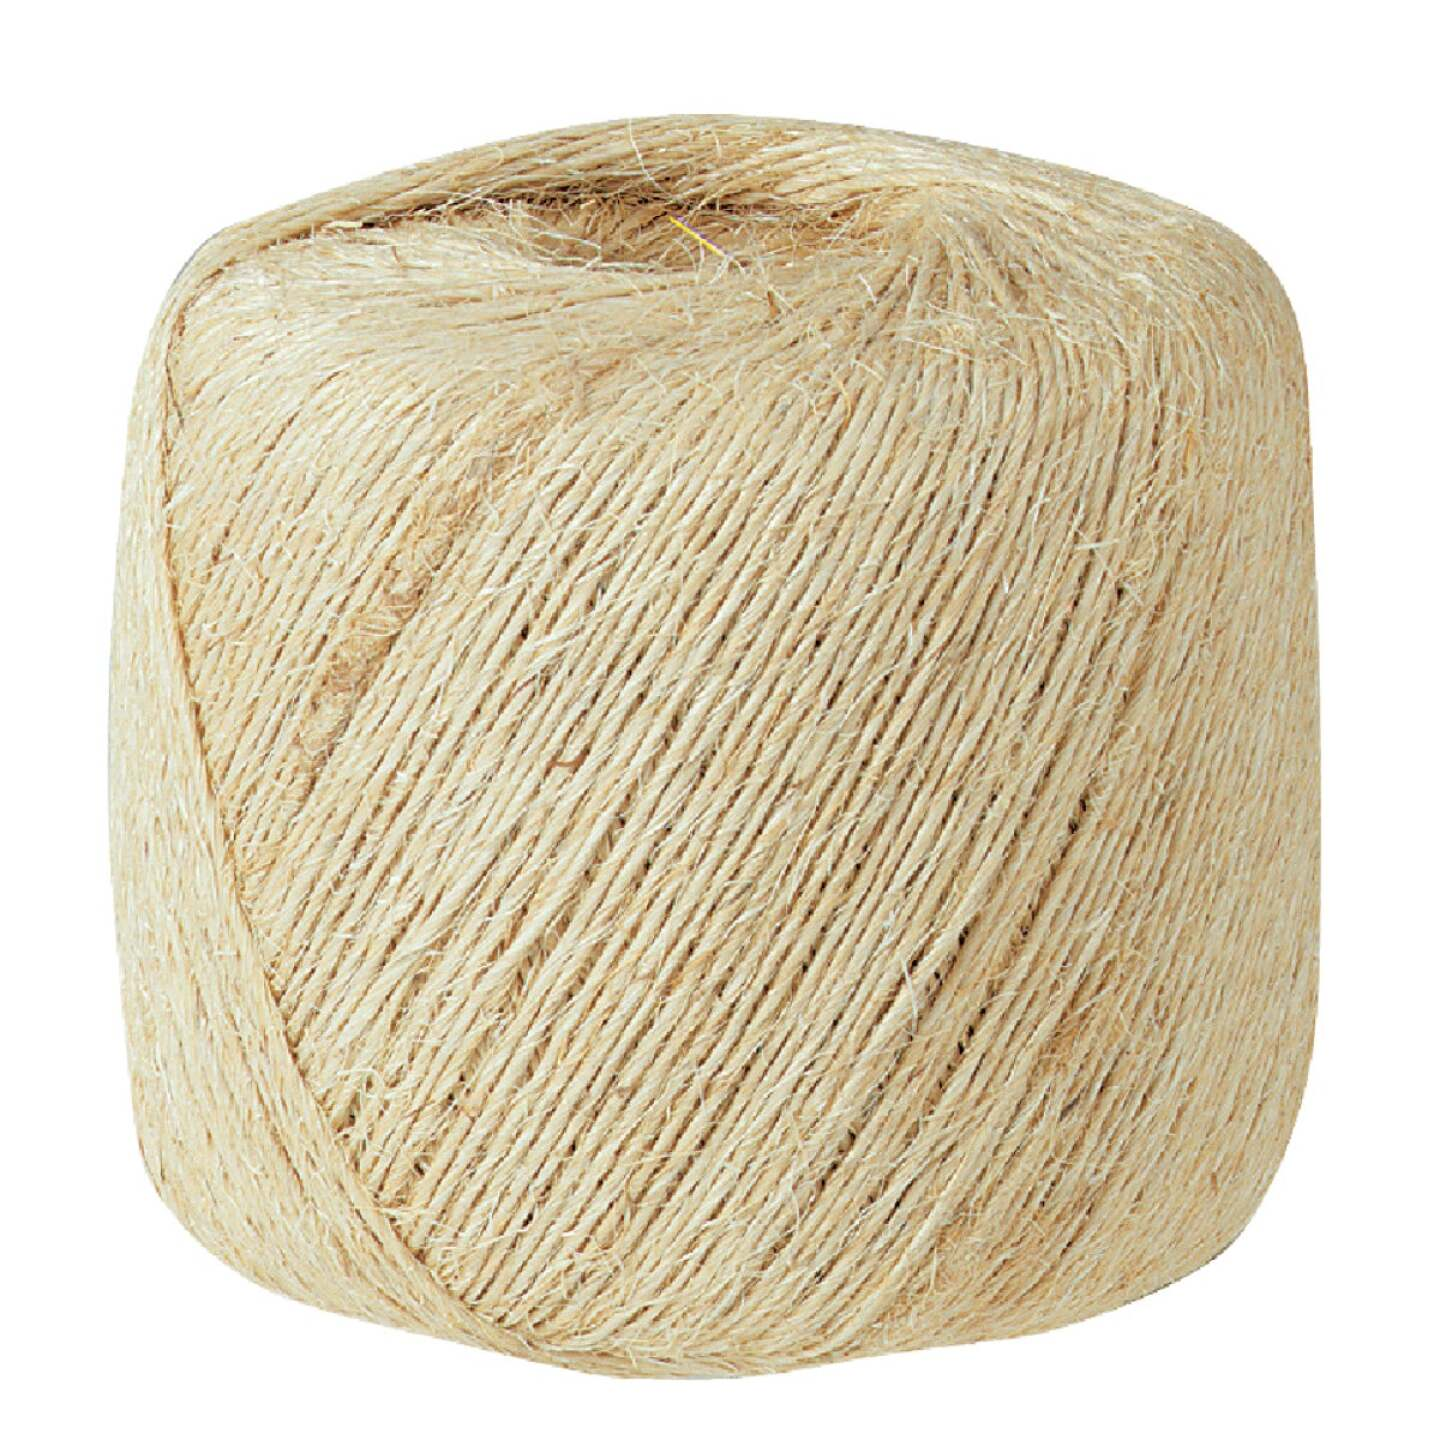 Do it 1-Ply x 2500 Ft. Tan Sisal Fiber Twine Image 2